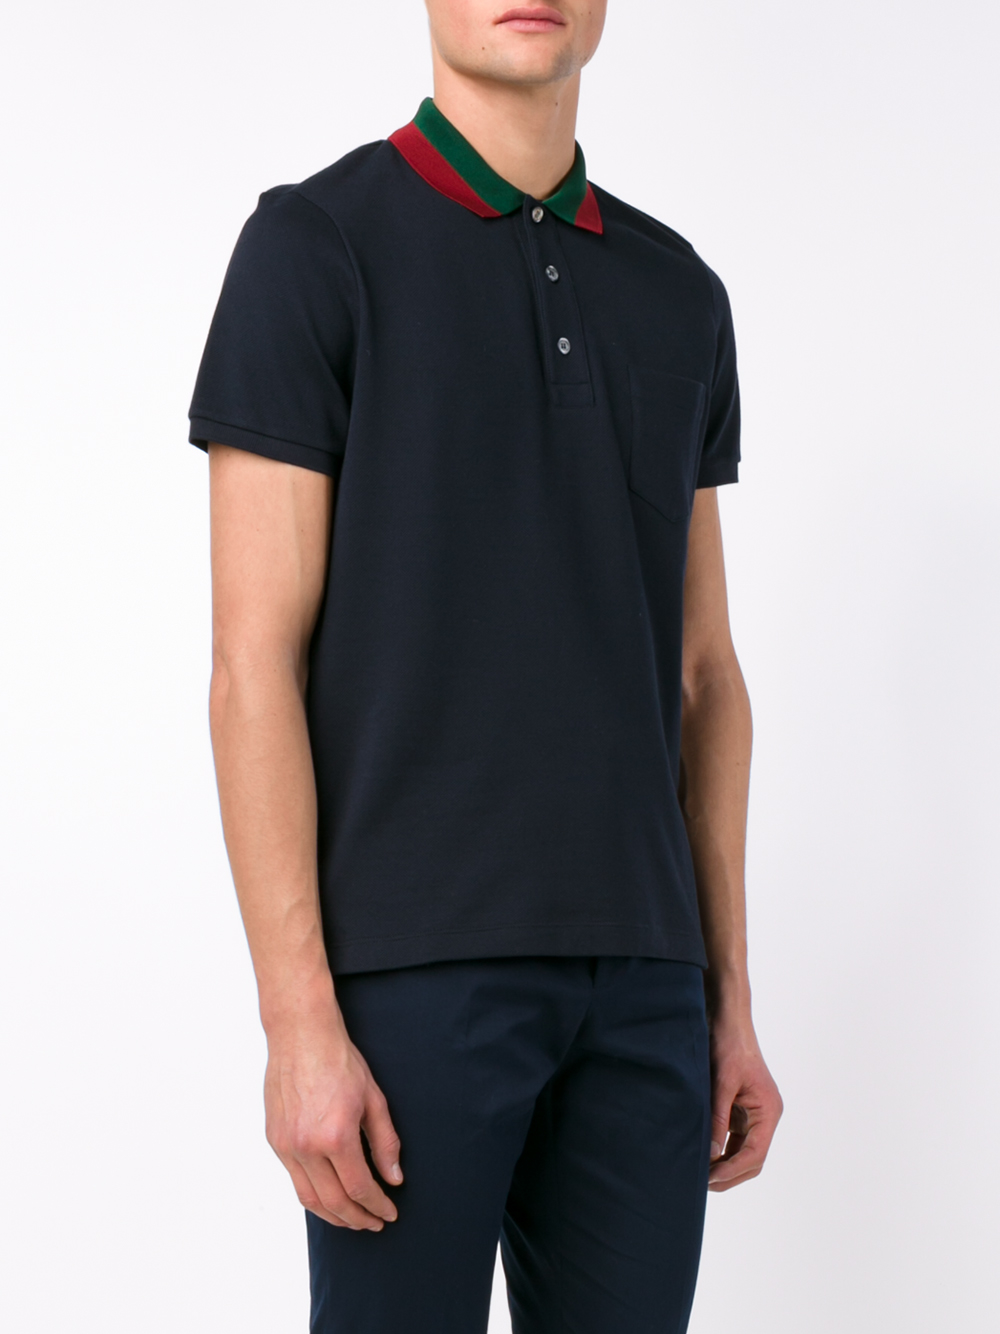 lyst gucci striped collar polo t shirt in blue for men. Black Bedroom Furniture Sets. Home Design Ideas